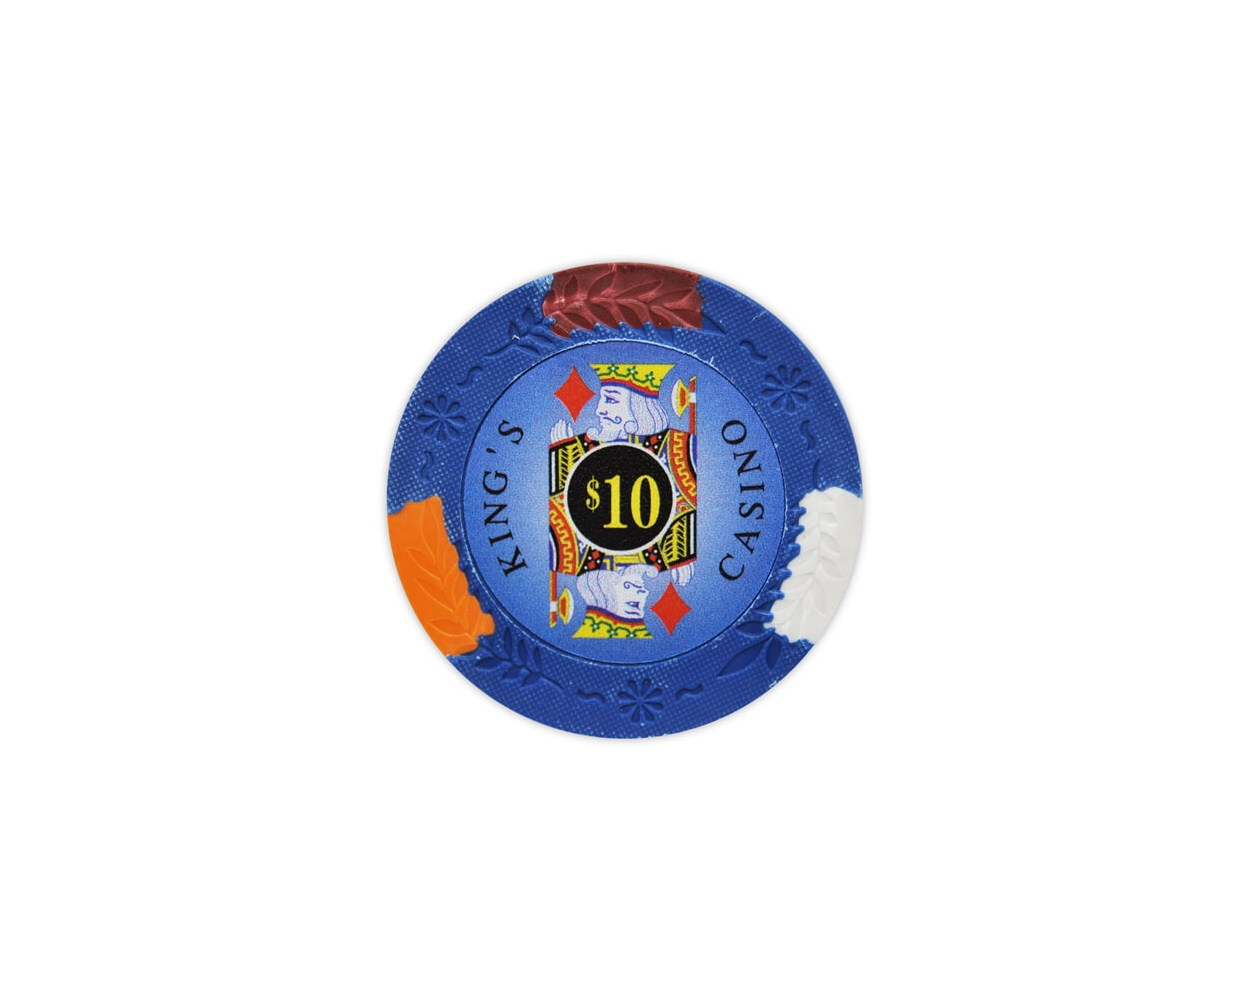 King's Casino - $10 Blue Clay Poker Chips